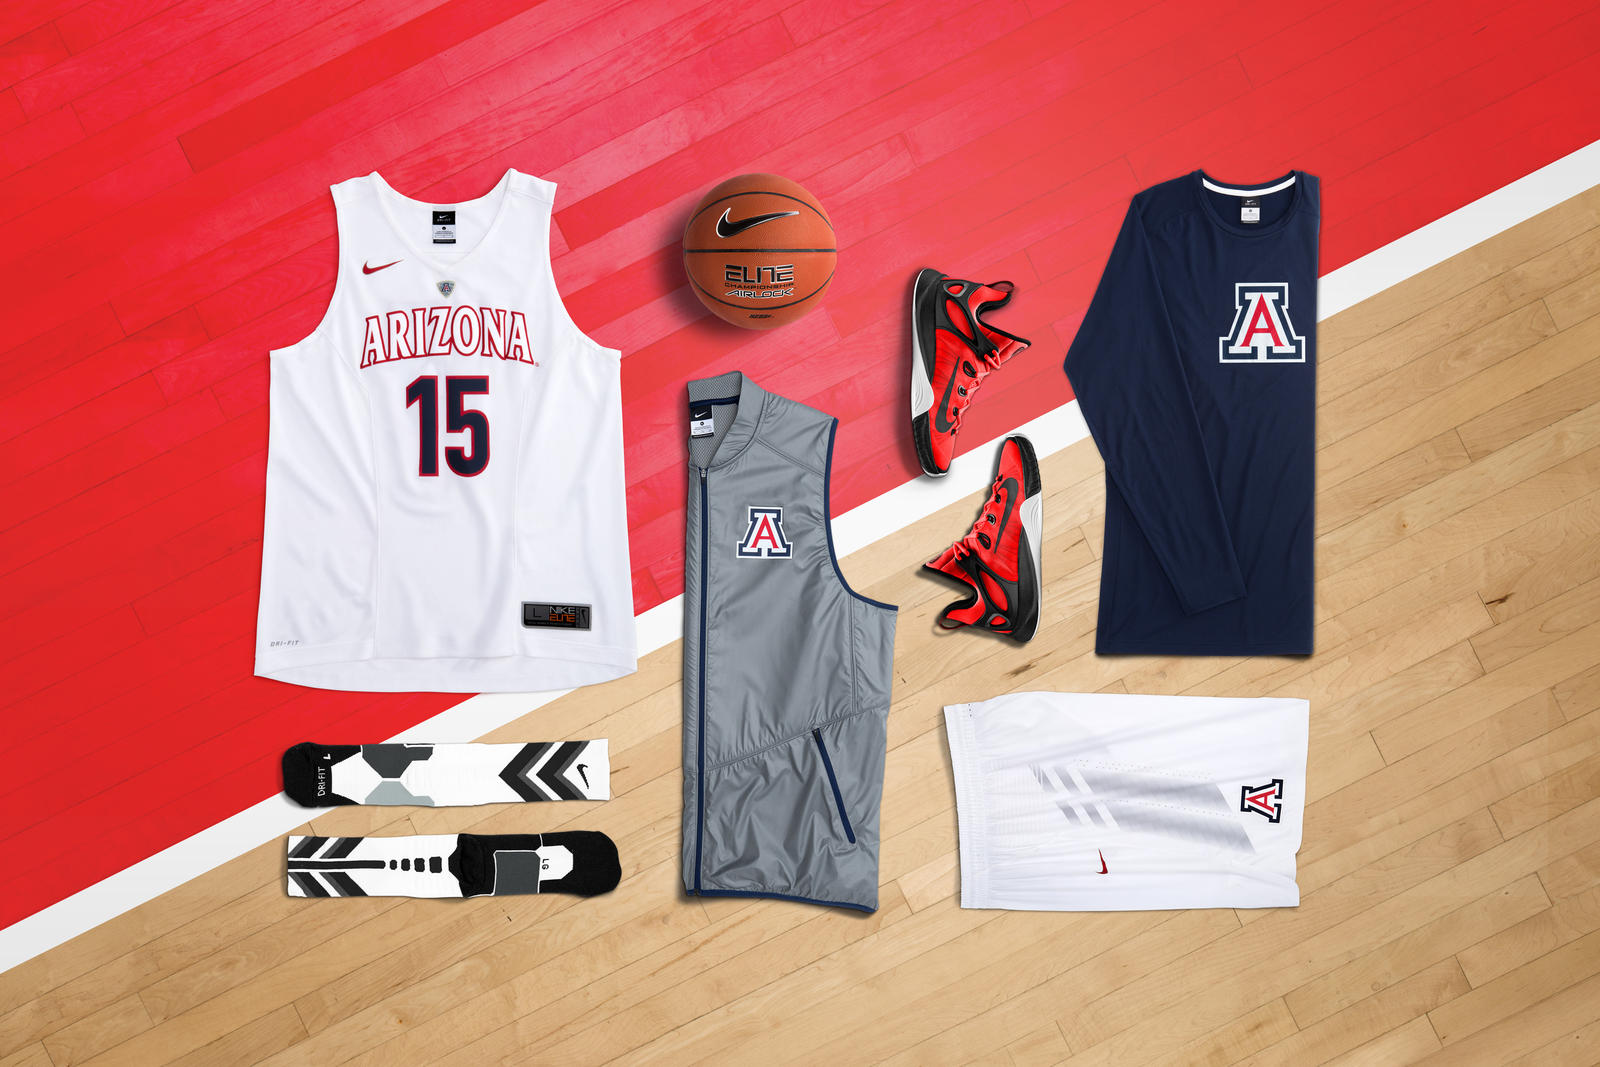 Nike Hyper Elite Arizona laydown